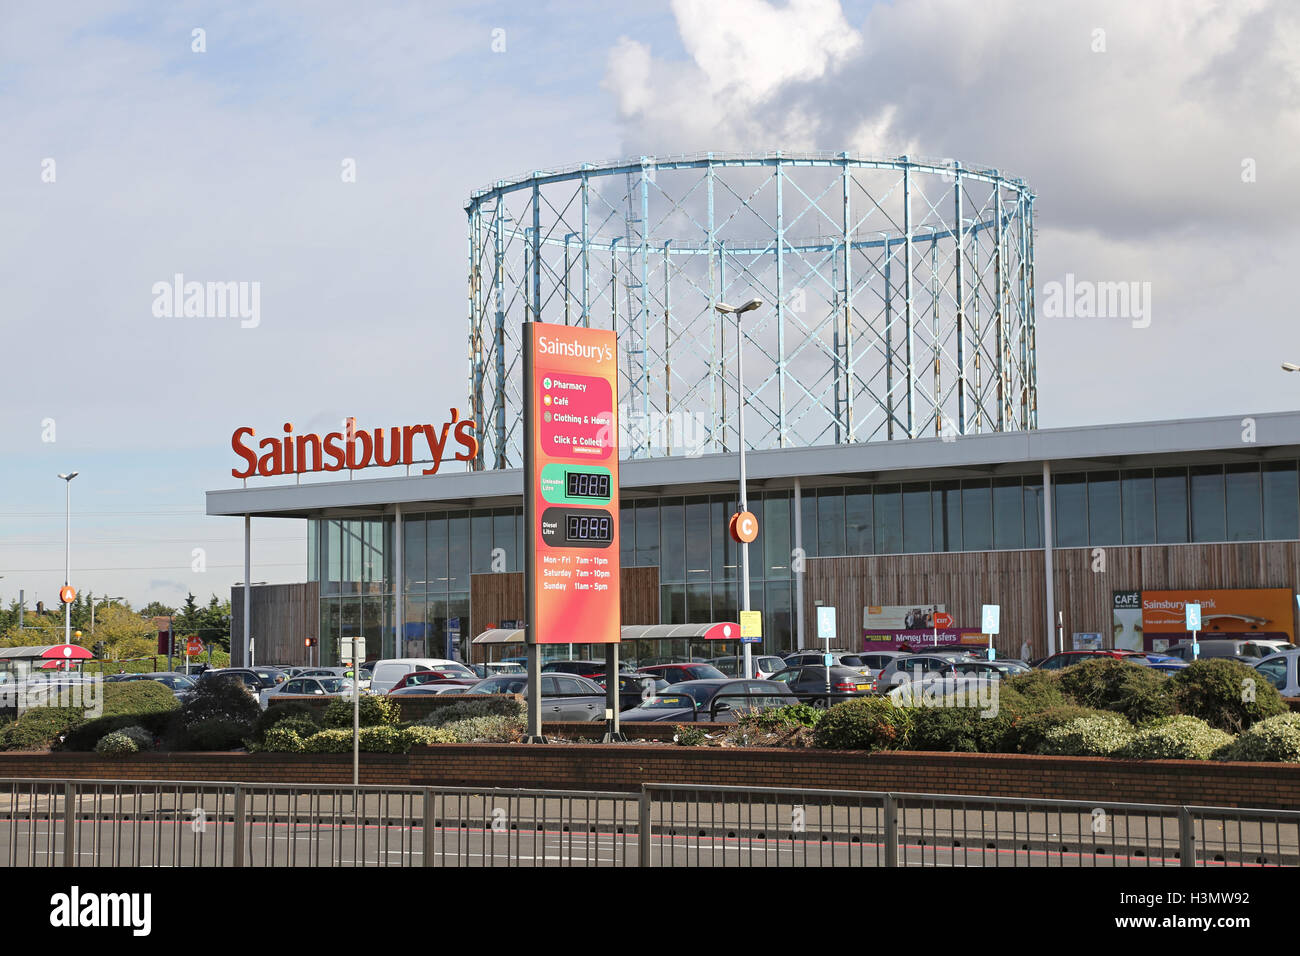 sainsbury 39 s store on the purley way croydon uk a major. Black Bedroom Furniture Sets. Home Design Ideas